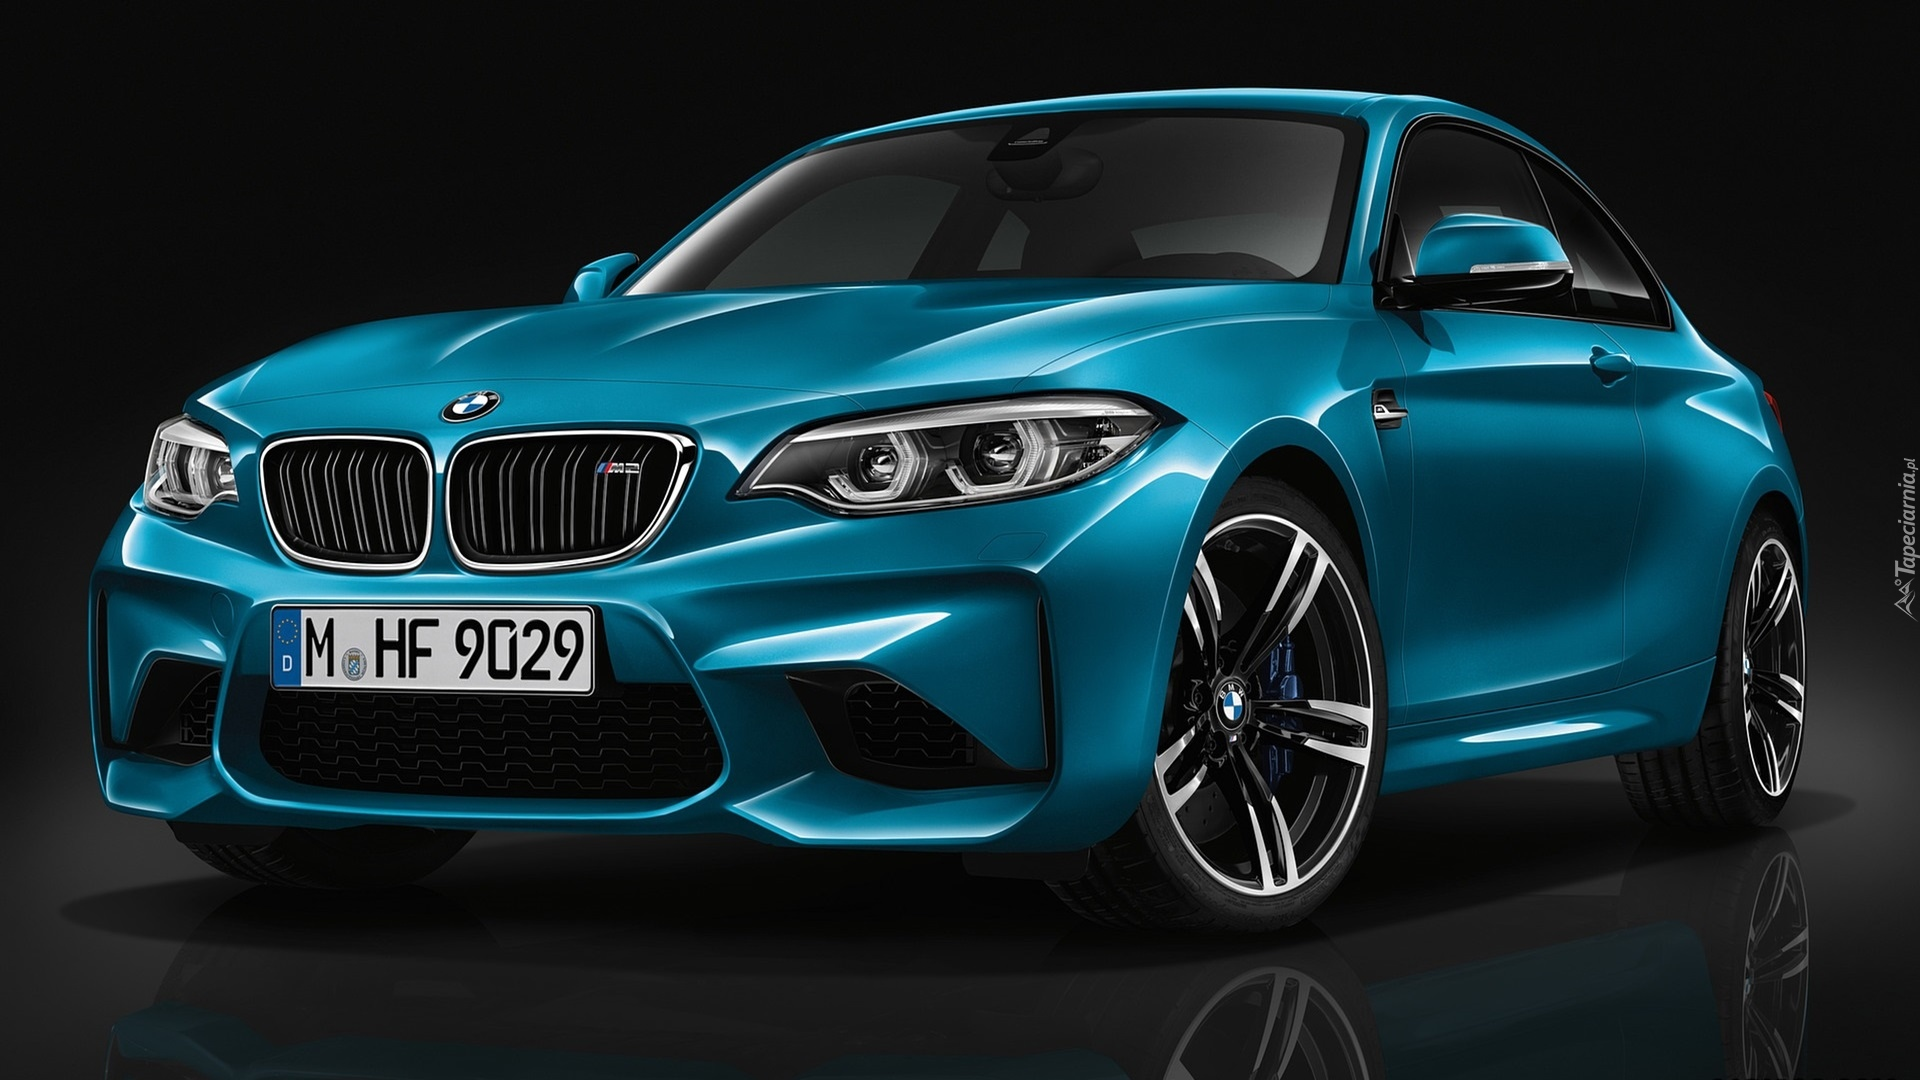 niebieskie bmw m2 coupe long beach blue metallic rocznik 2016. Black Bedroom Furniture Sets. Home Design Ideas